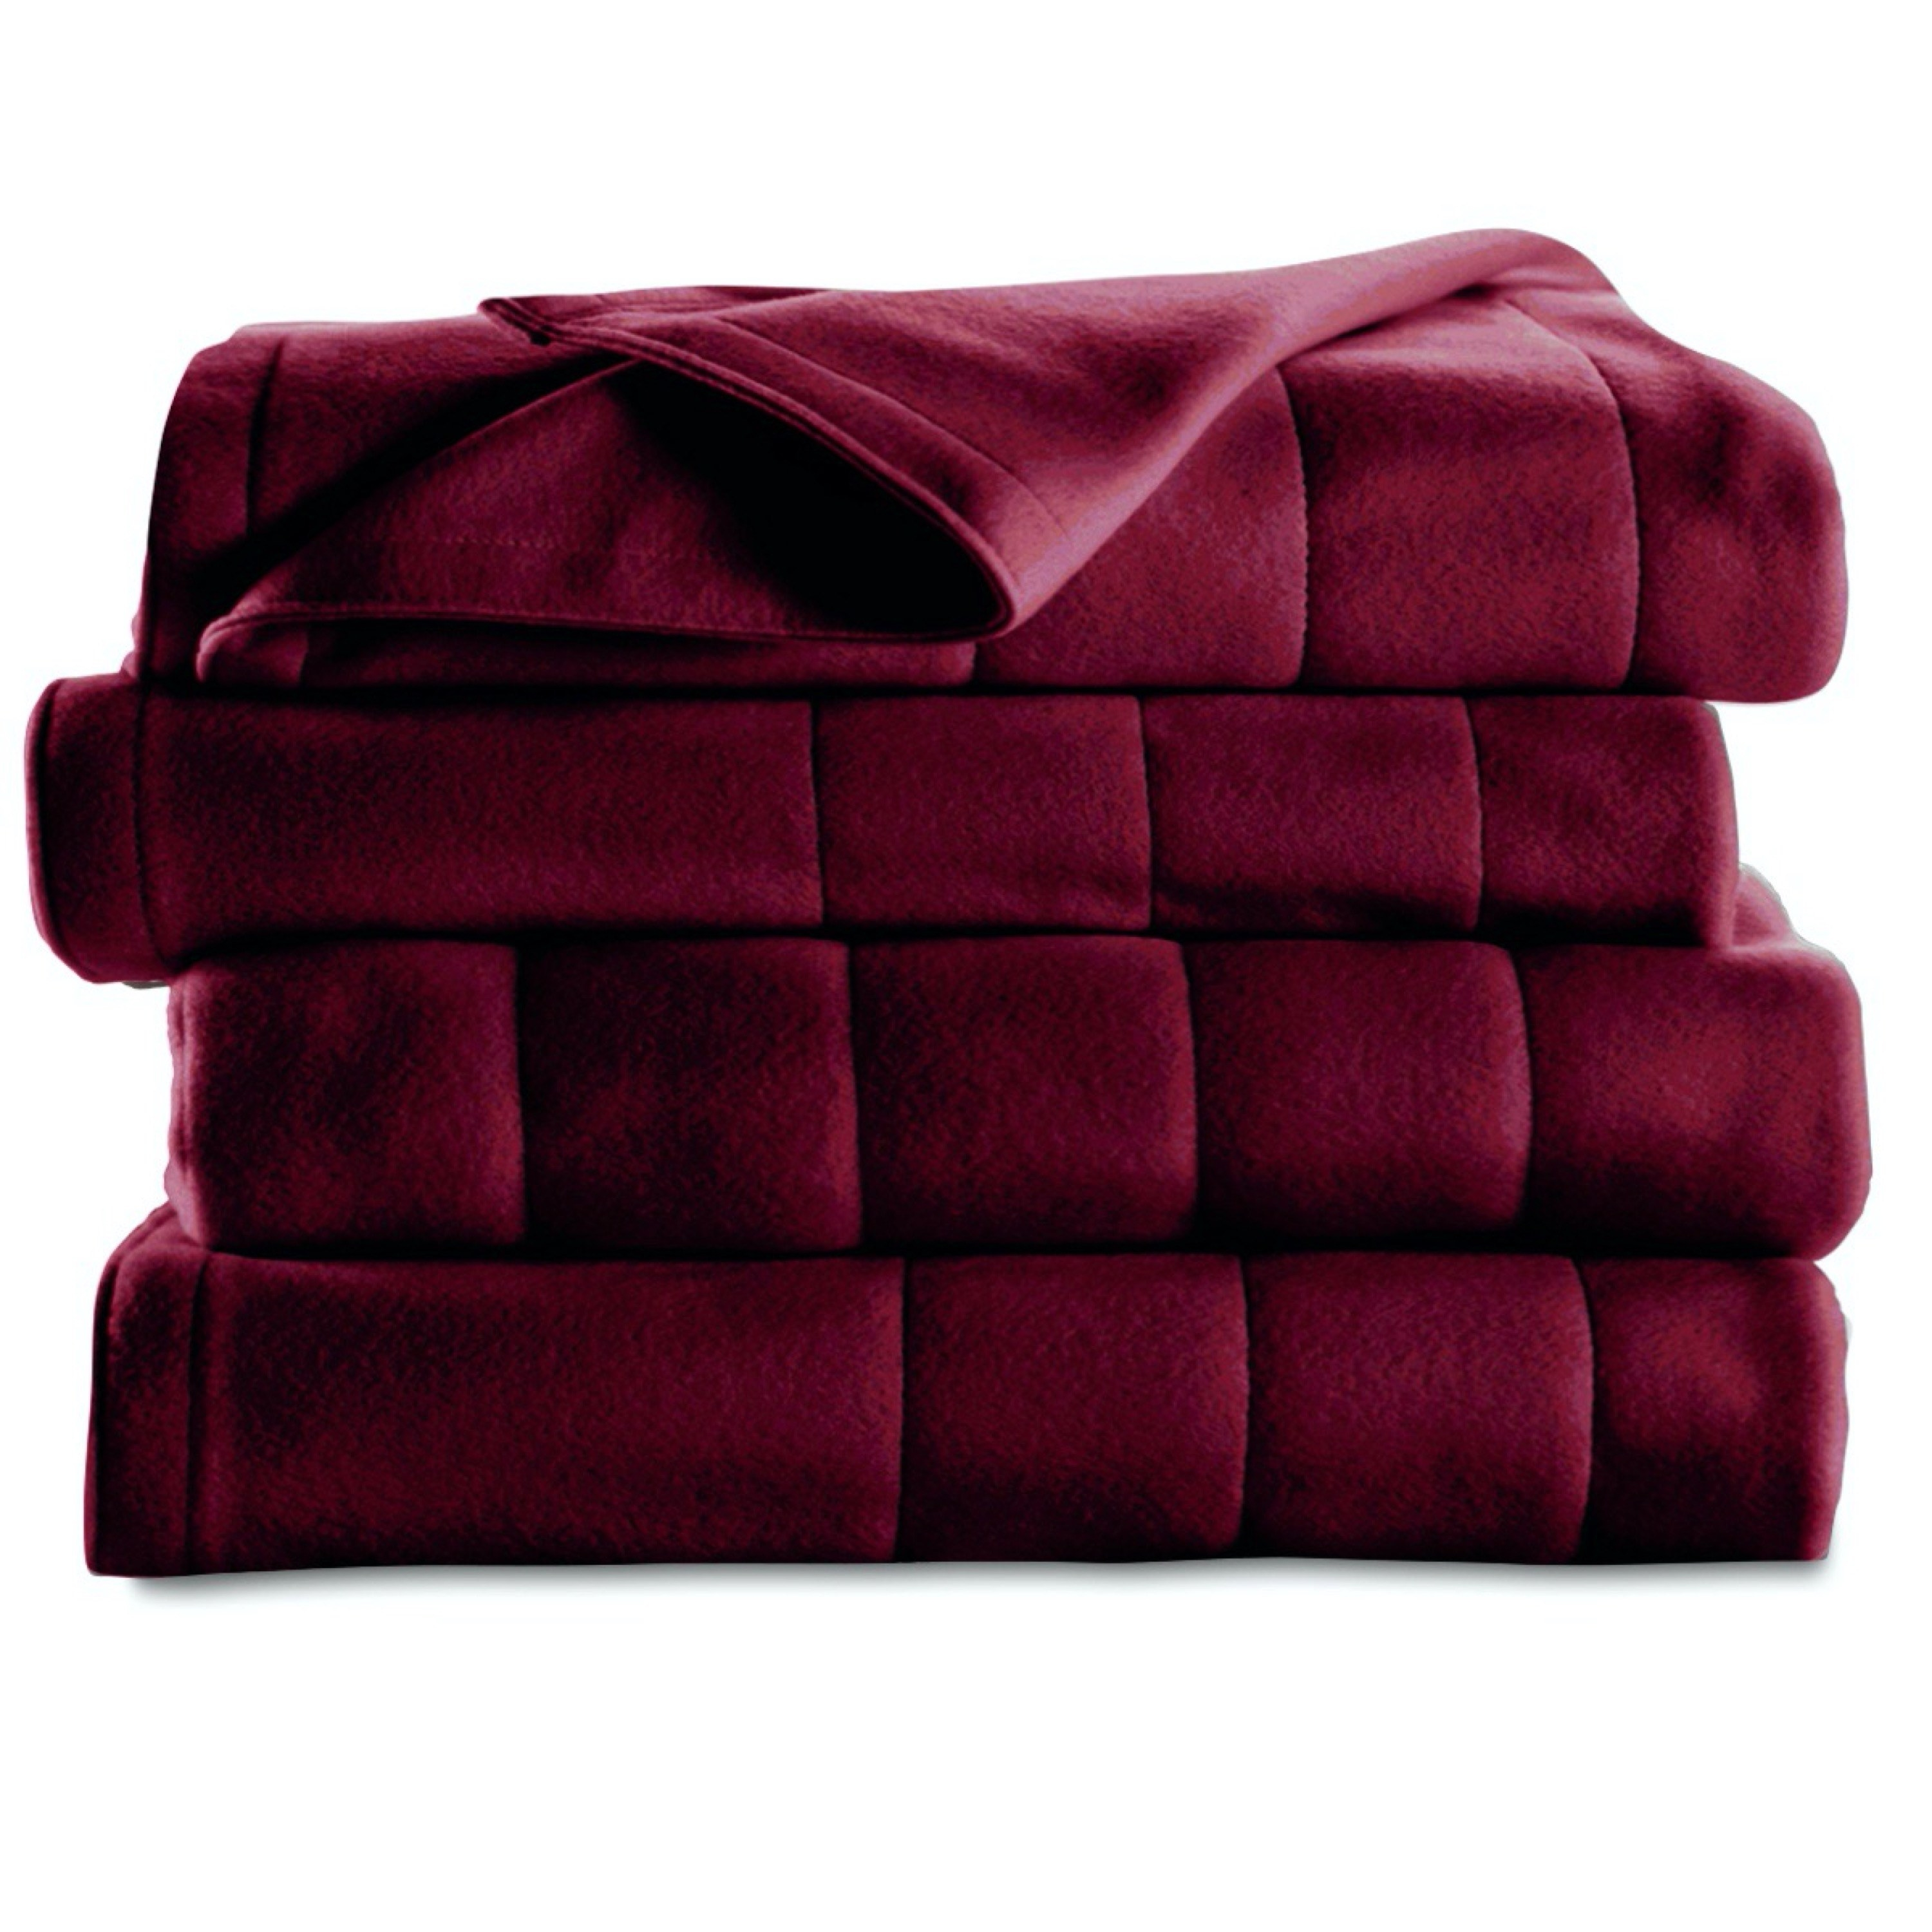 red heated blanket folded up